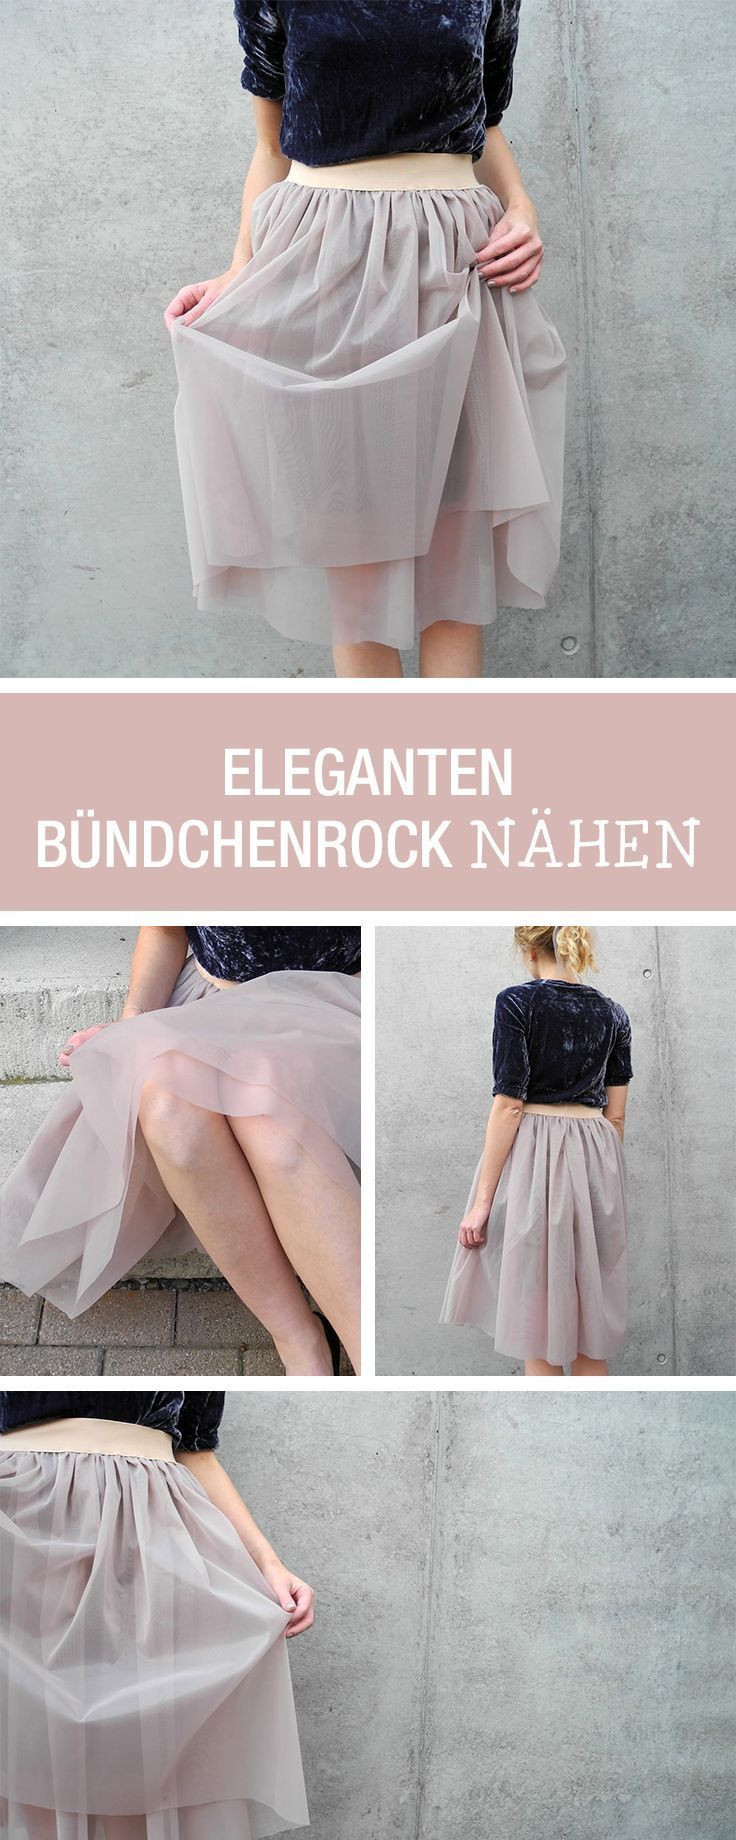 39 best Nähen images on Pinterest | Sewing ideas, Sewing projects ...